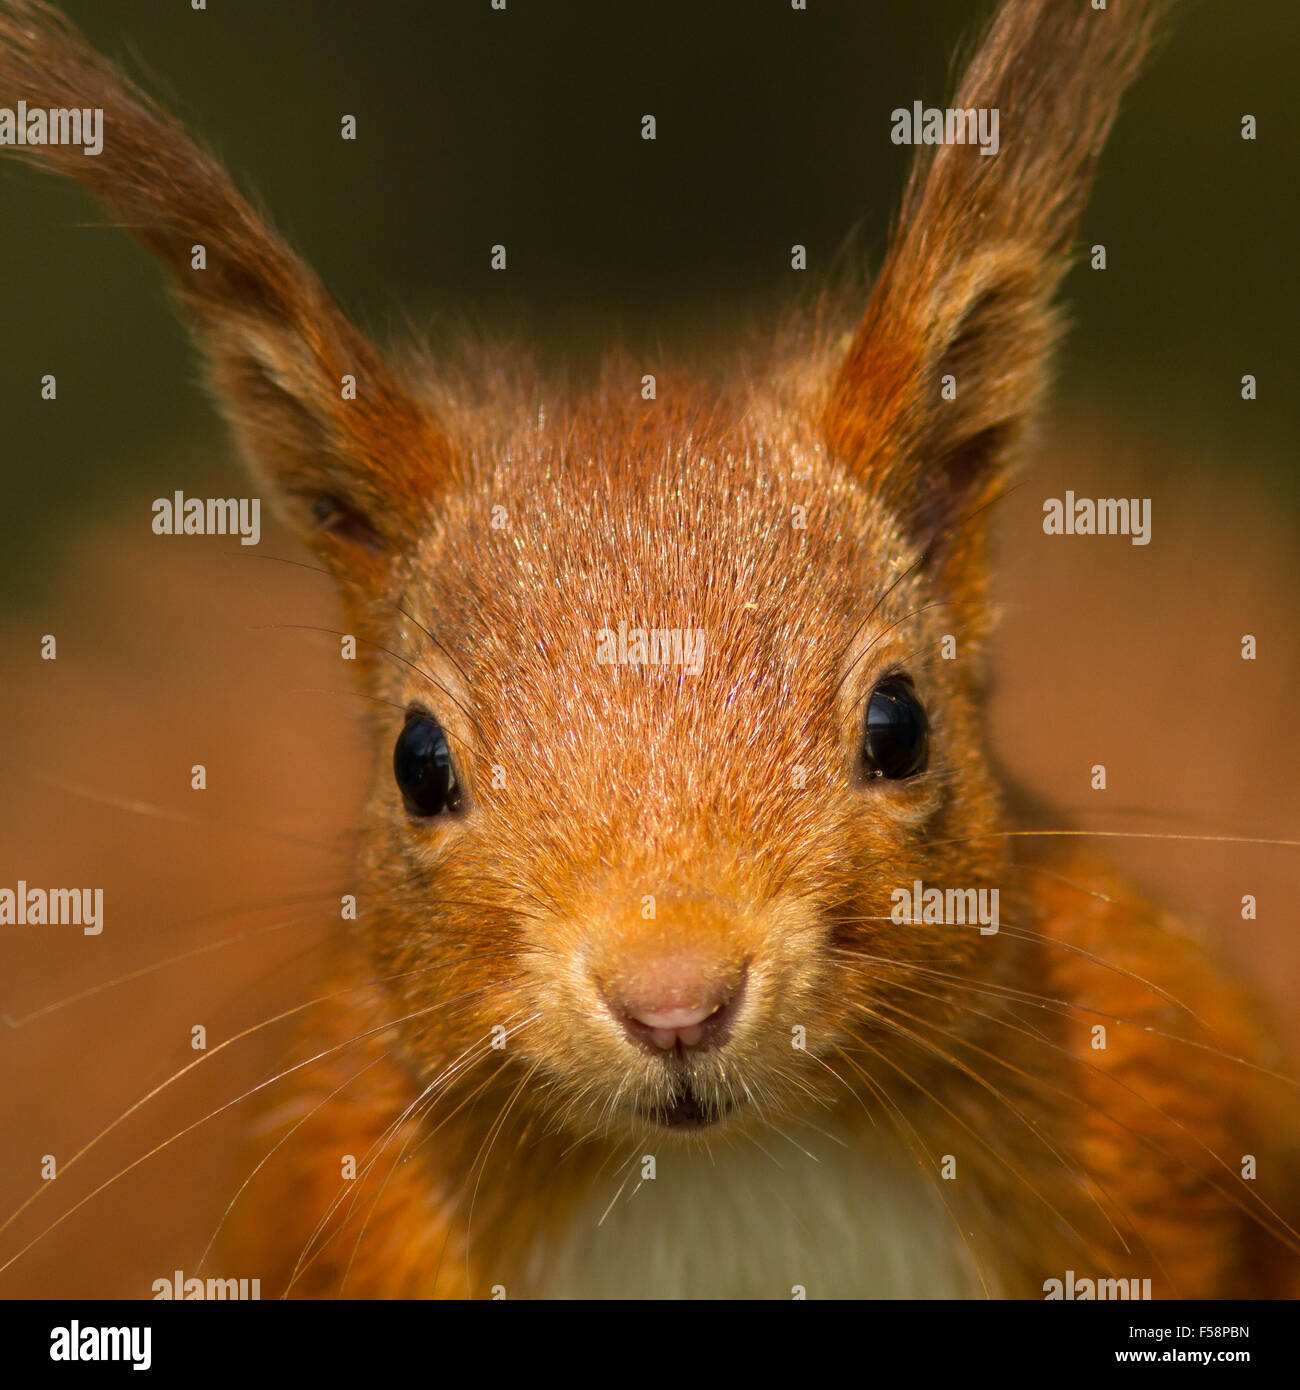 Portrait of a Red Squirrel - Stock Image